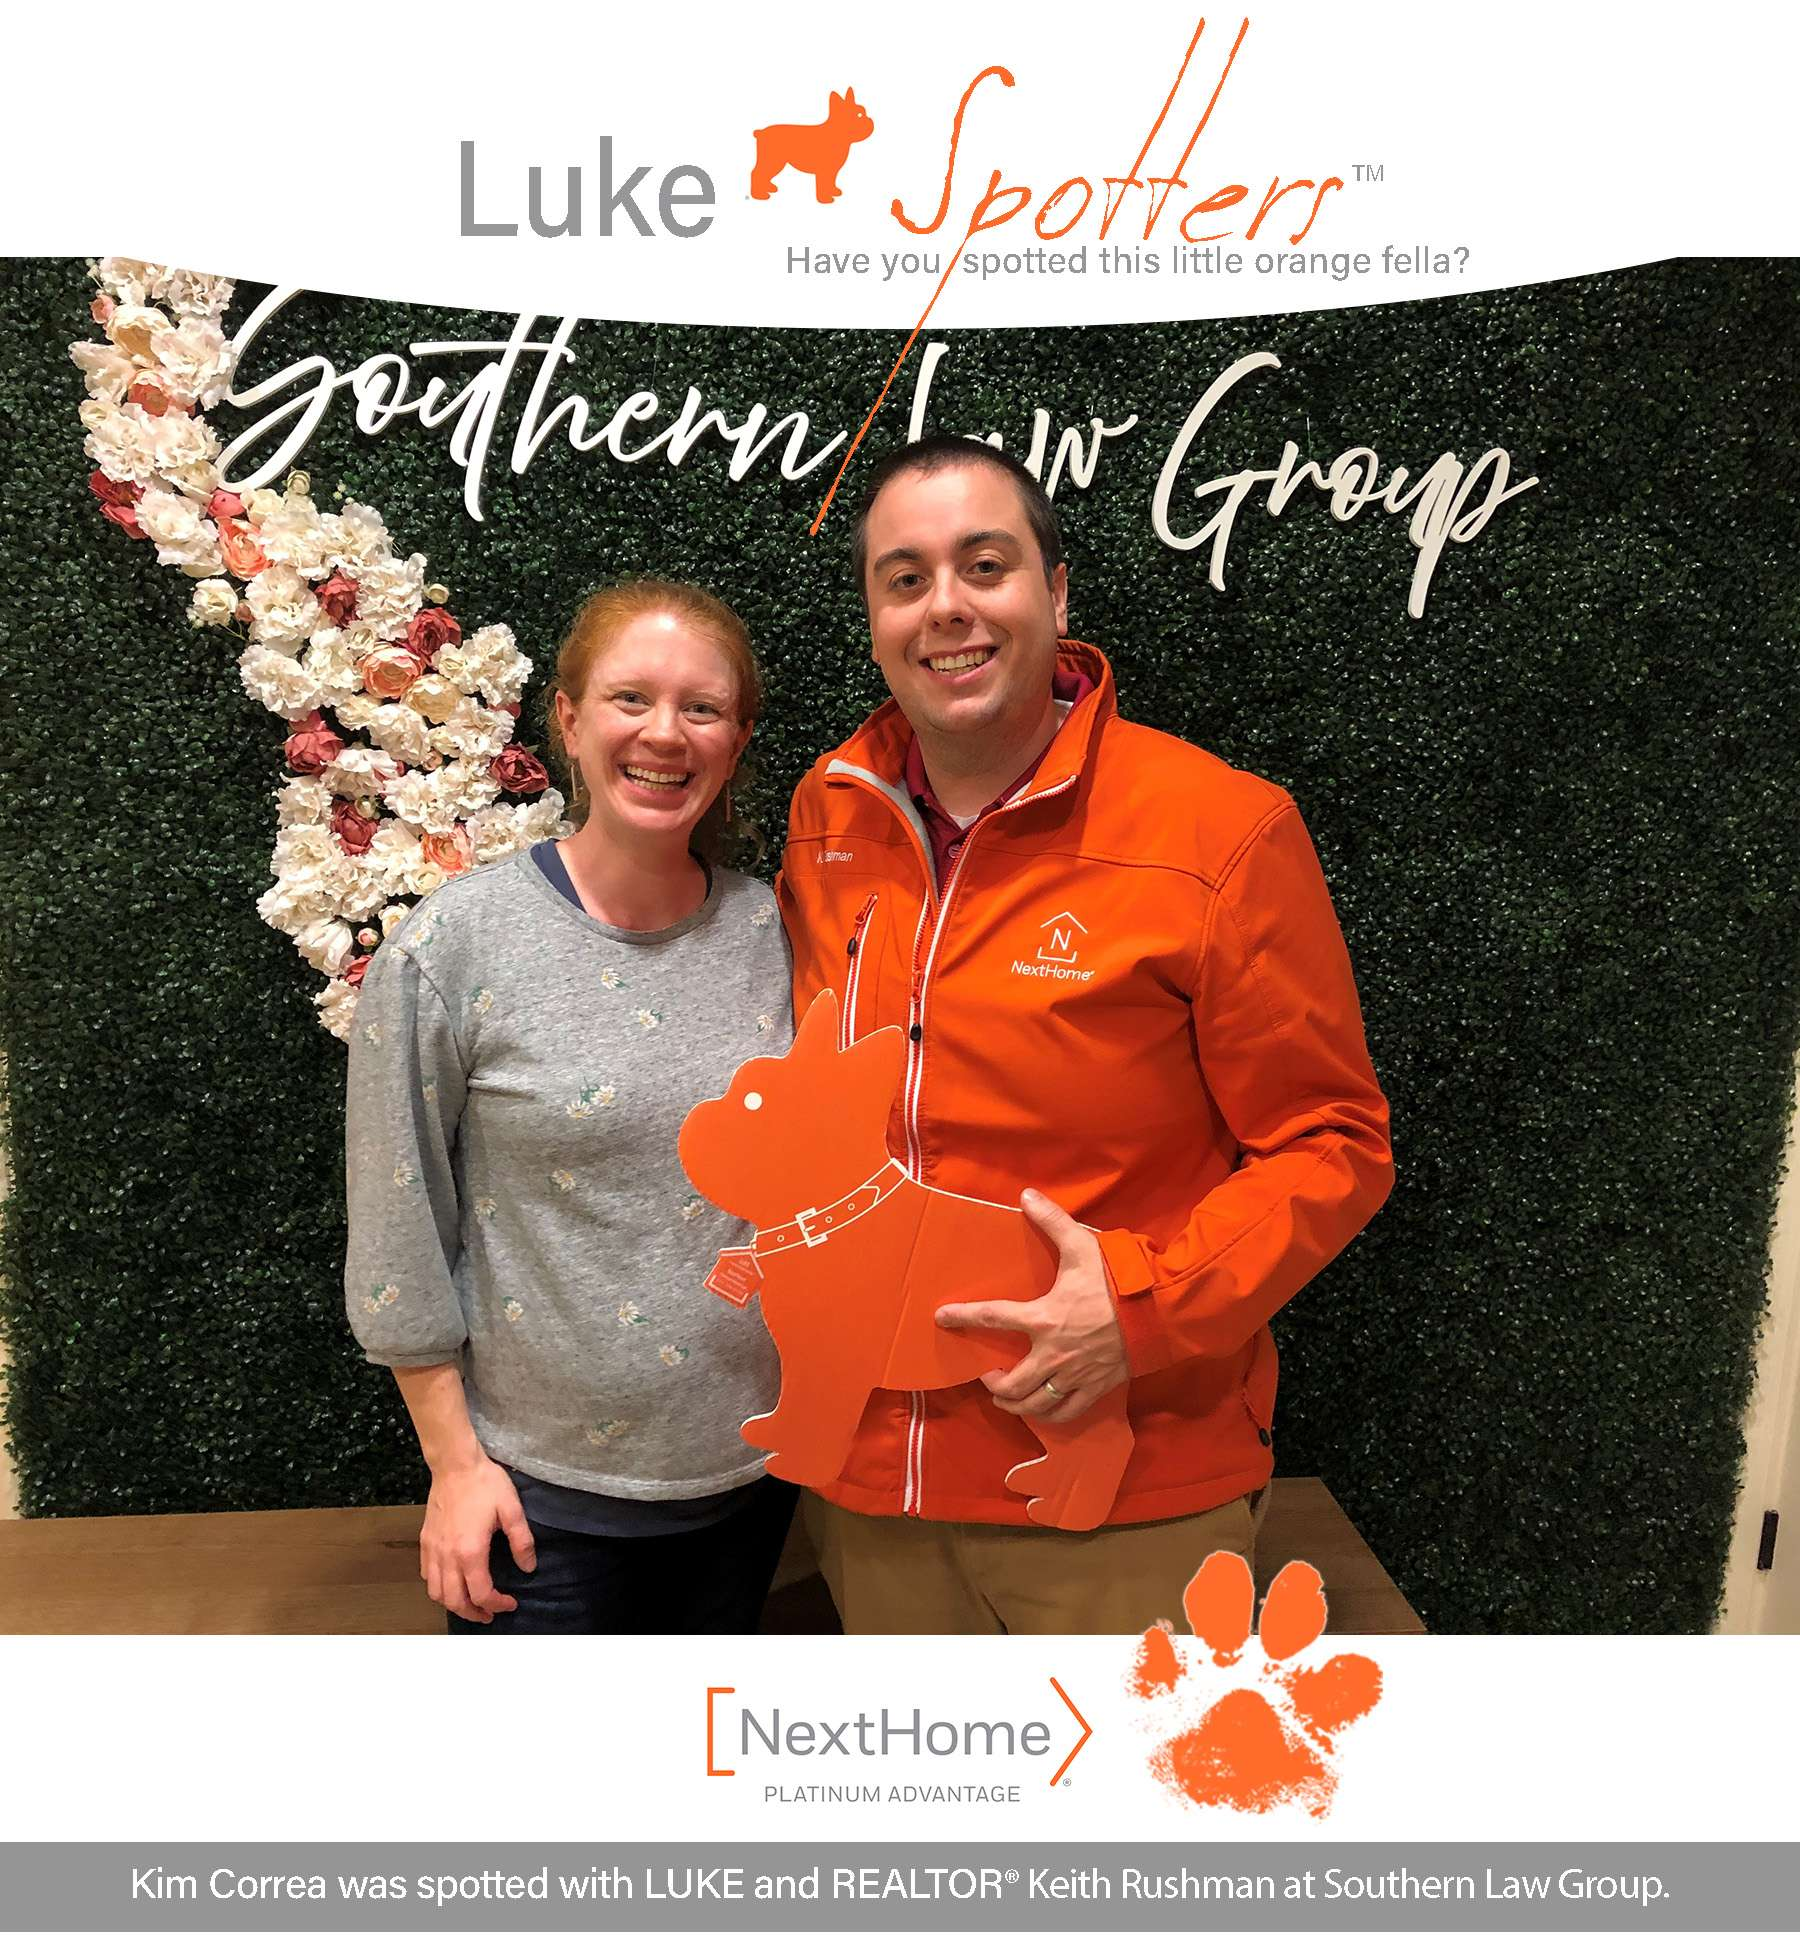 Kim Correa was spotted with LUKE and REALTOR® Keith Rushman at Southern Law Group.